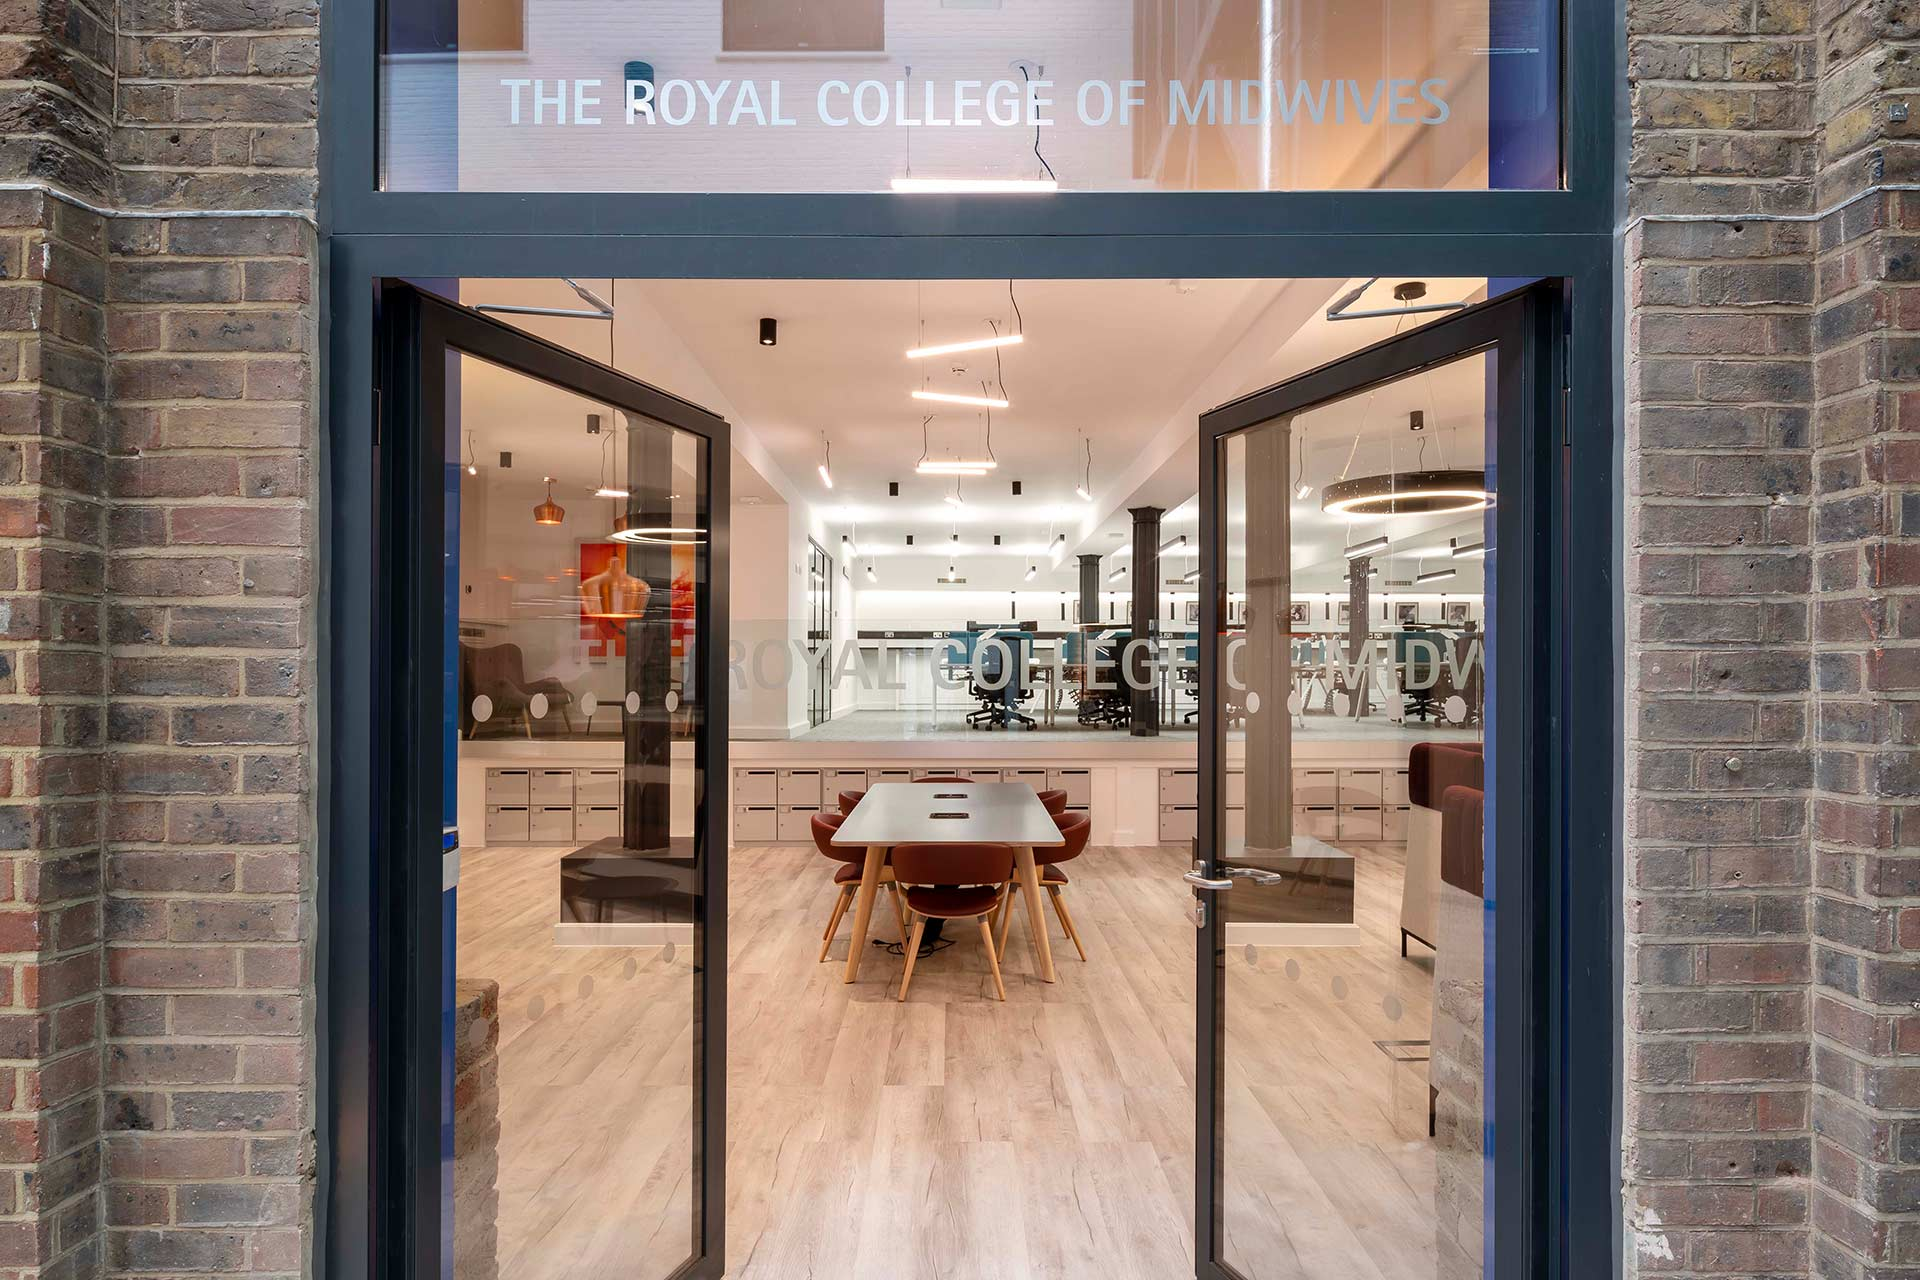 Royal College of Midwives